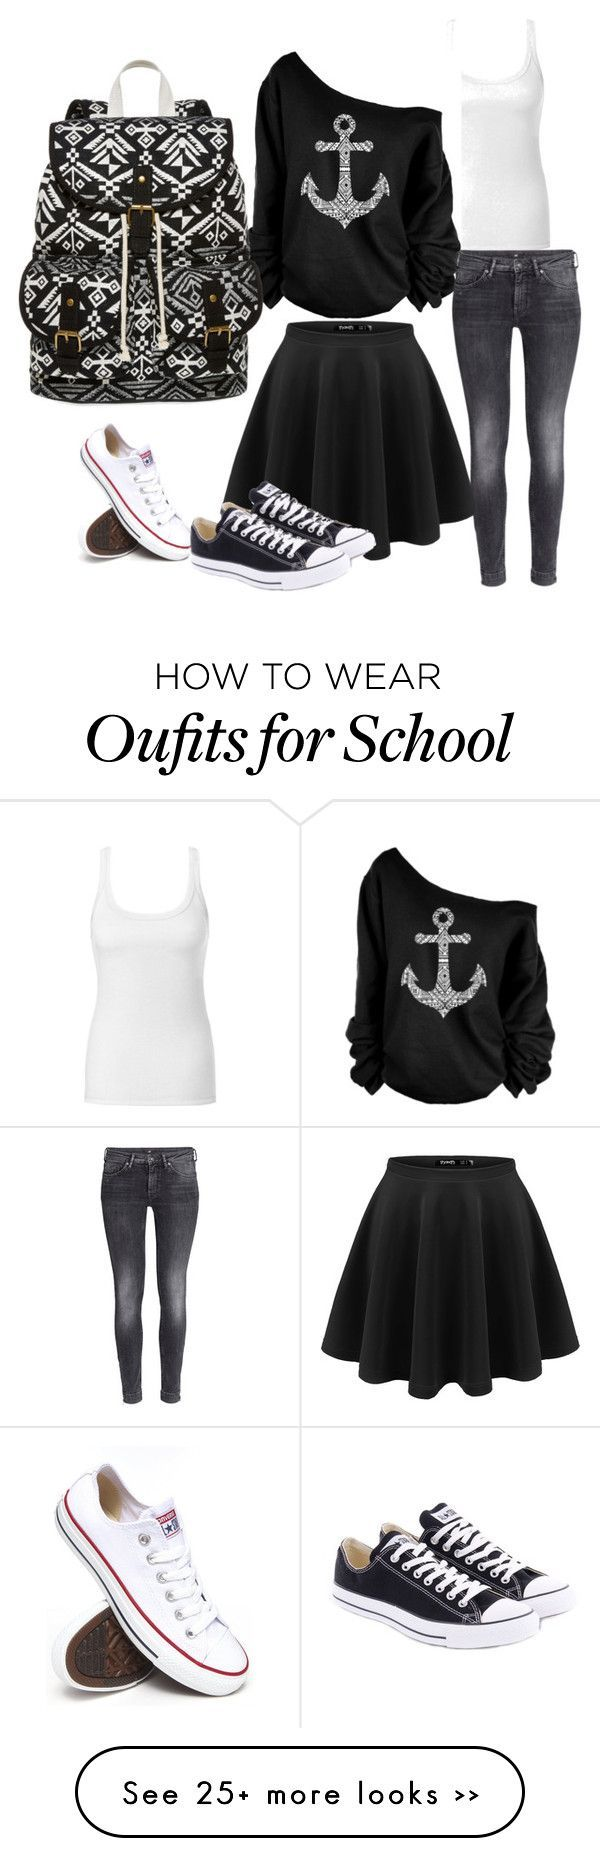 """School ideas"" by michaela535 on Polyvore"